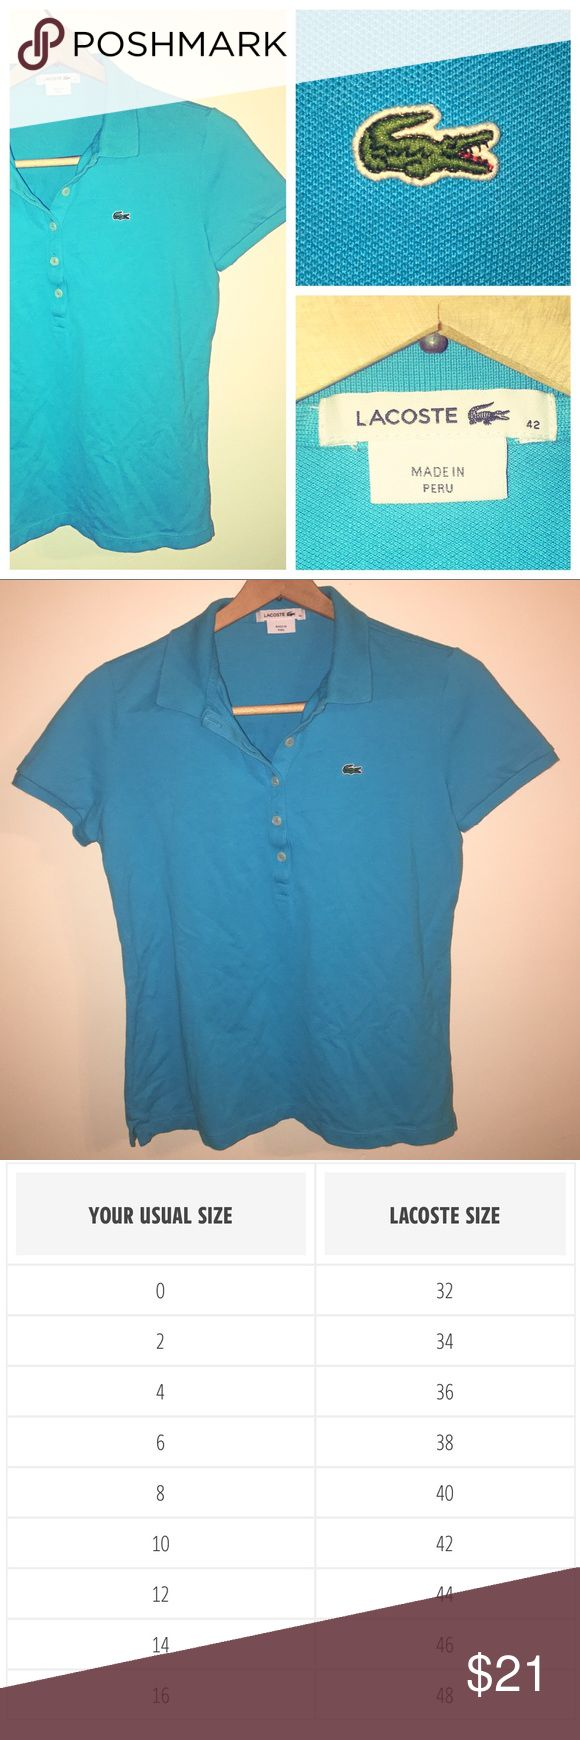 Lacoste 5-button Polo Cute Preppy Blue Polo. Goes Well With Shorts, Skirts, Or Pants. Fits M/L. In Great Condition. Lacoste Tops